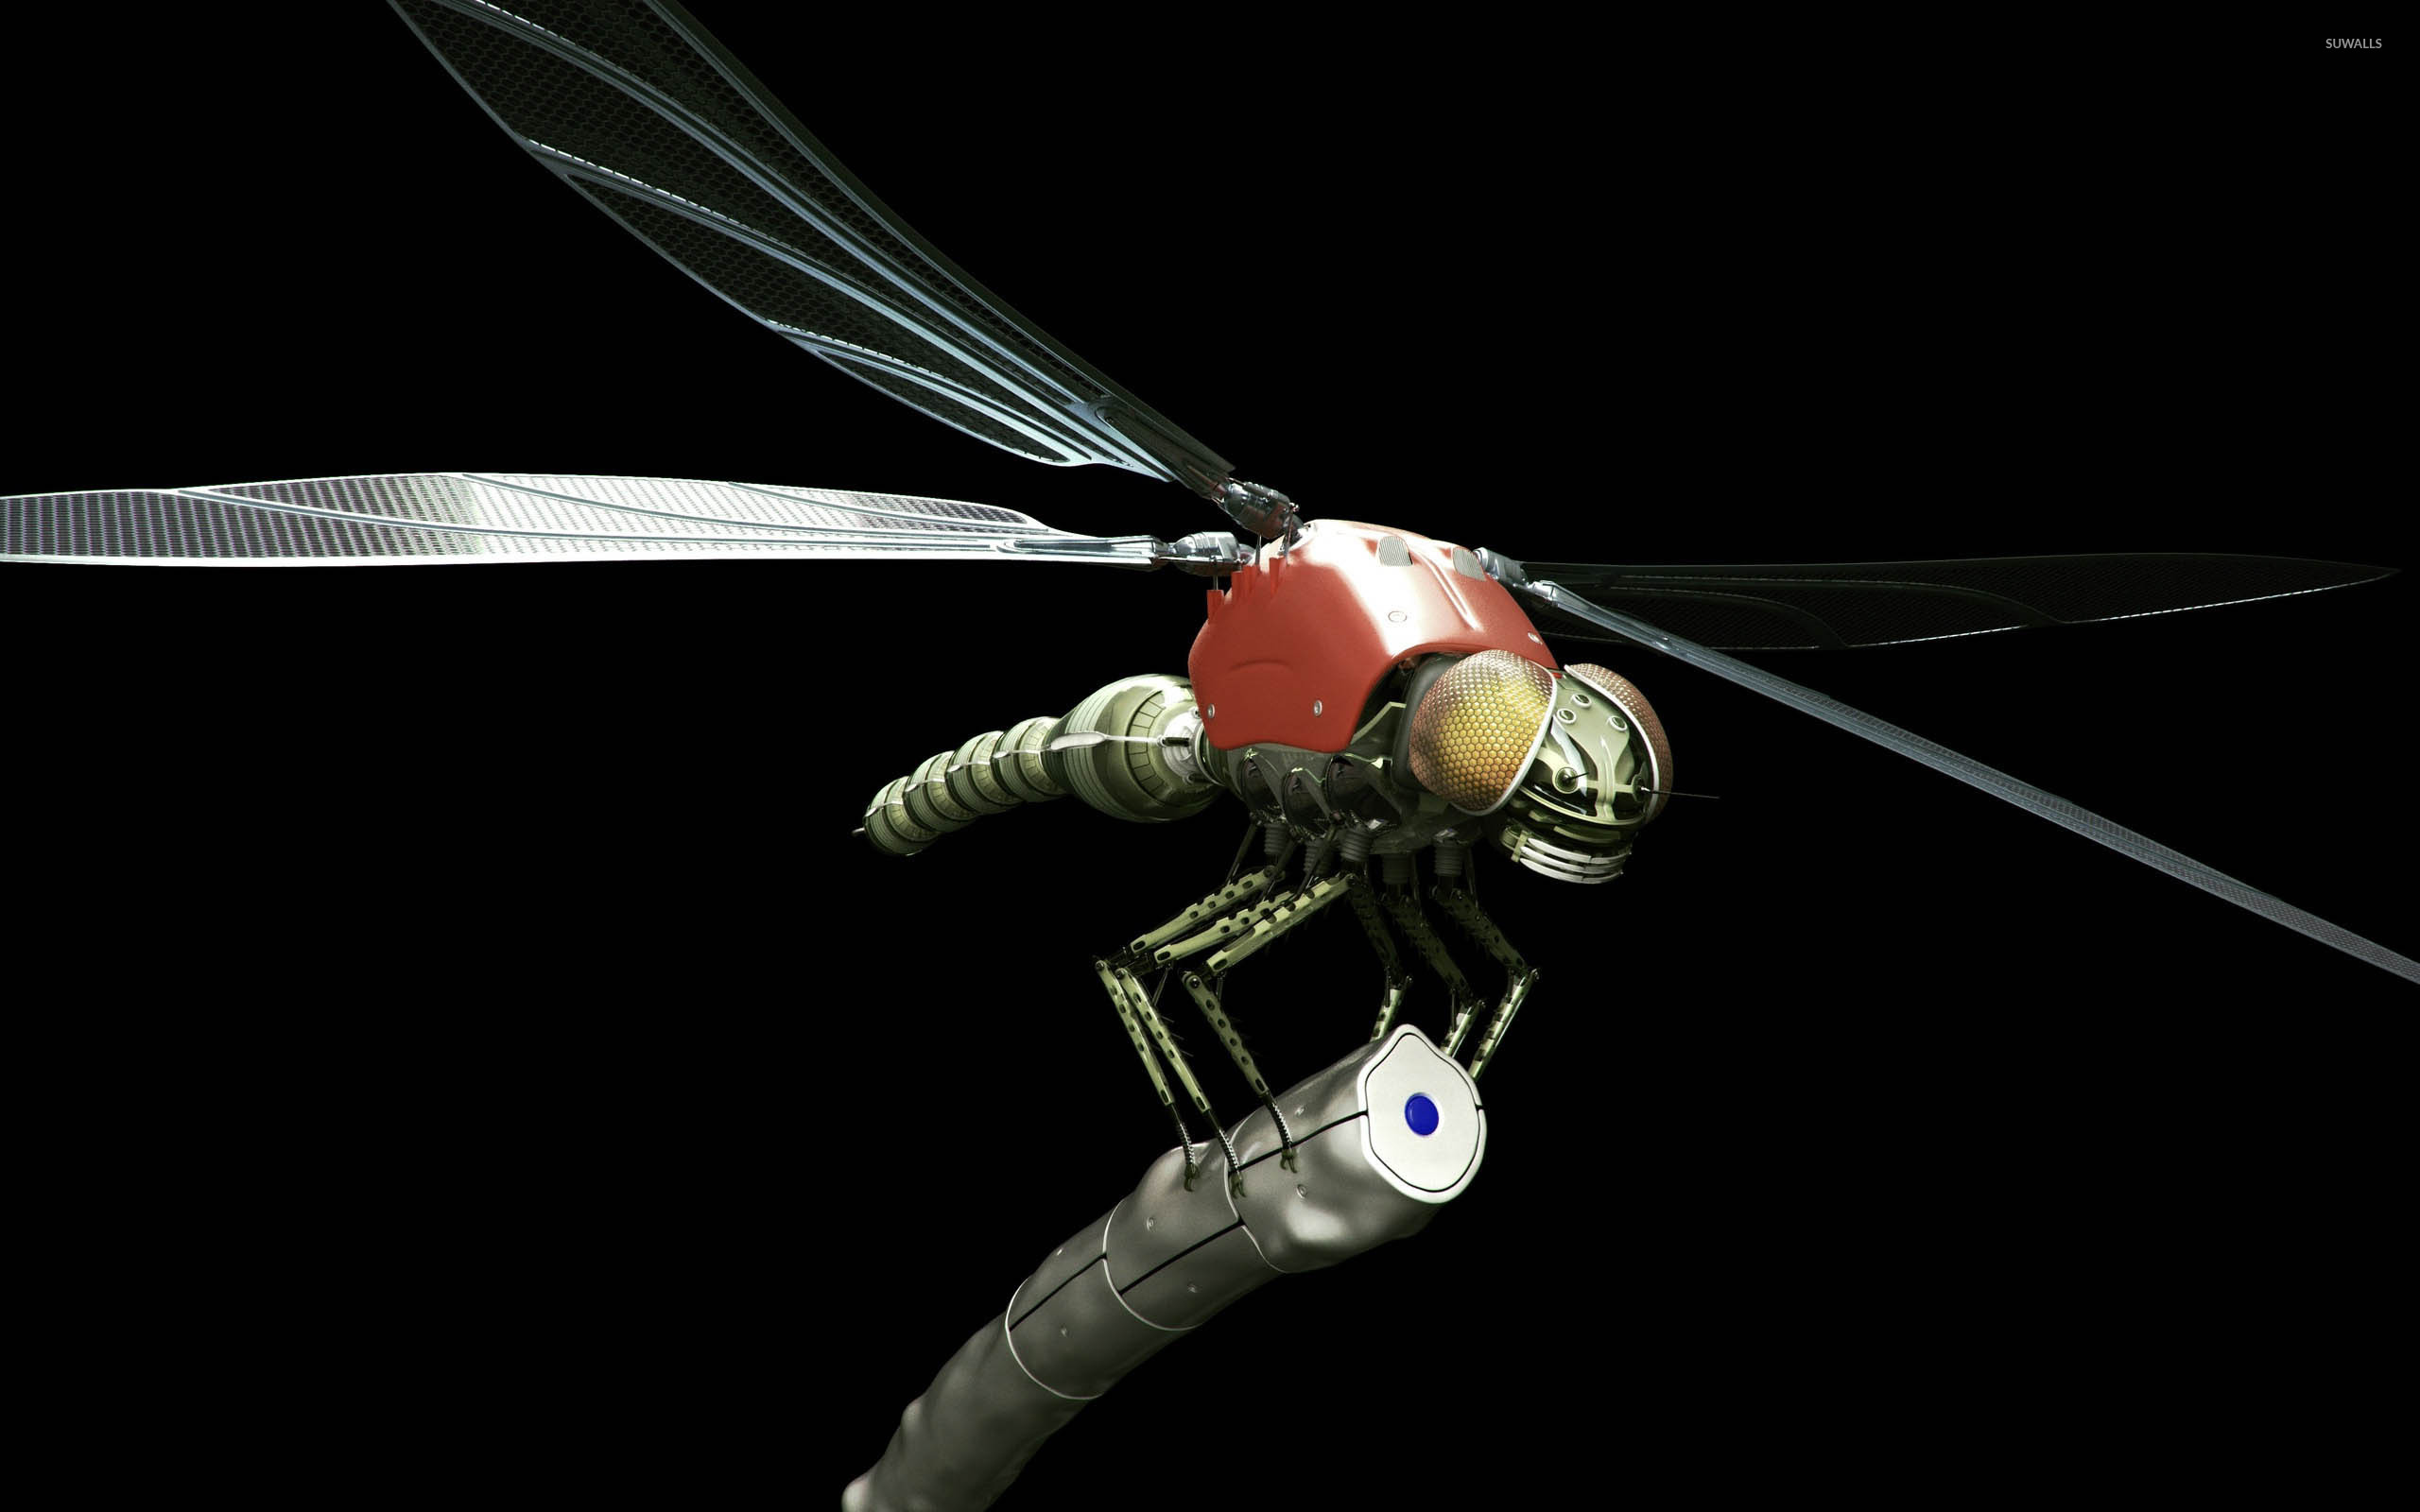 dragonfly robot wallpaper 3d wallpapers 17364